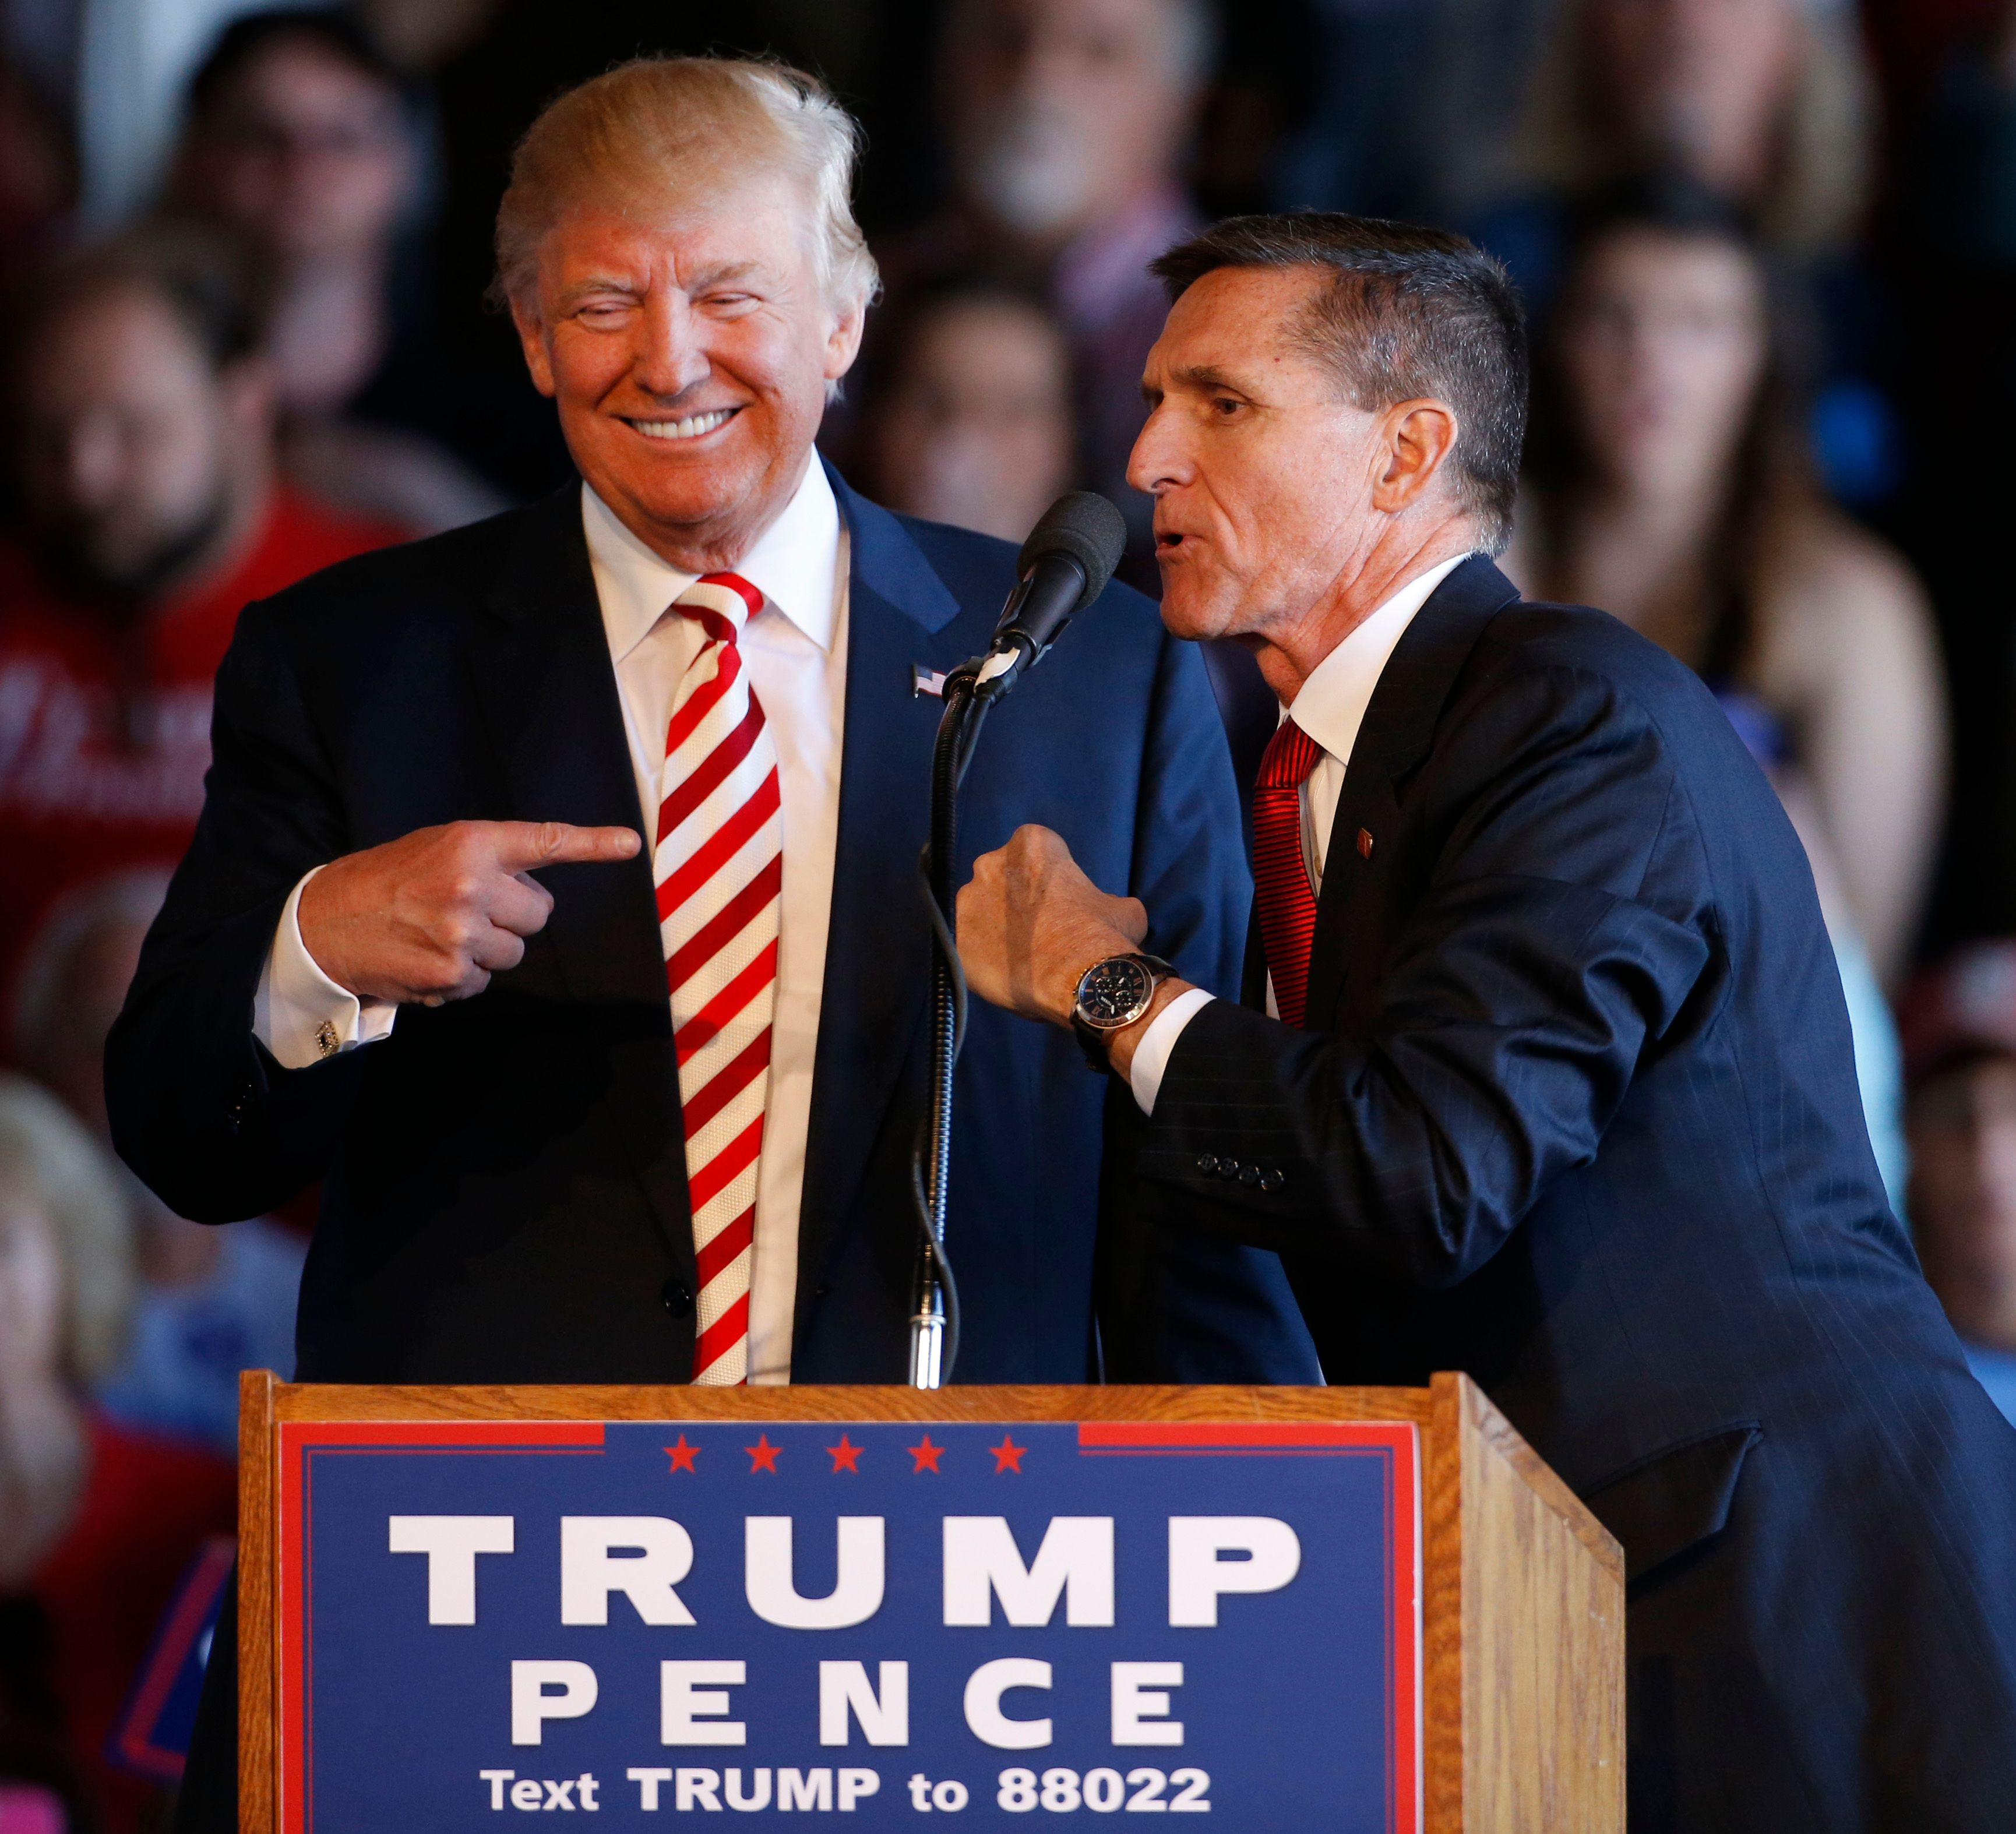 Key takeaways from Robert Mueller's memo on Michael Flynn's cooperation